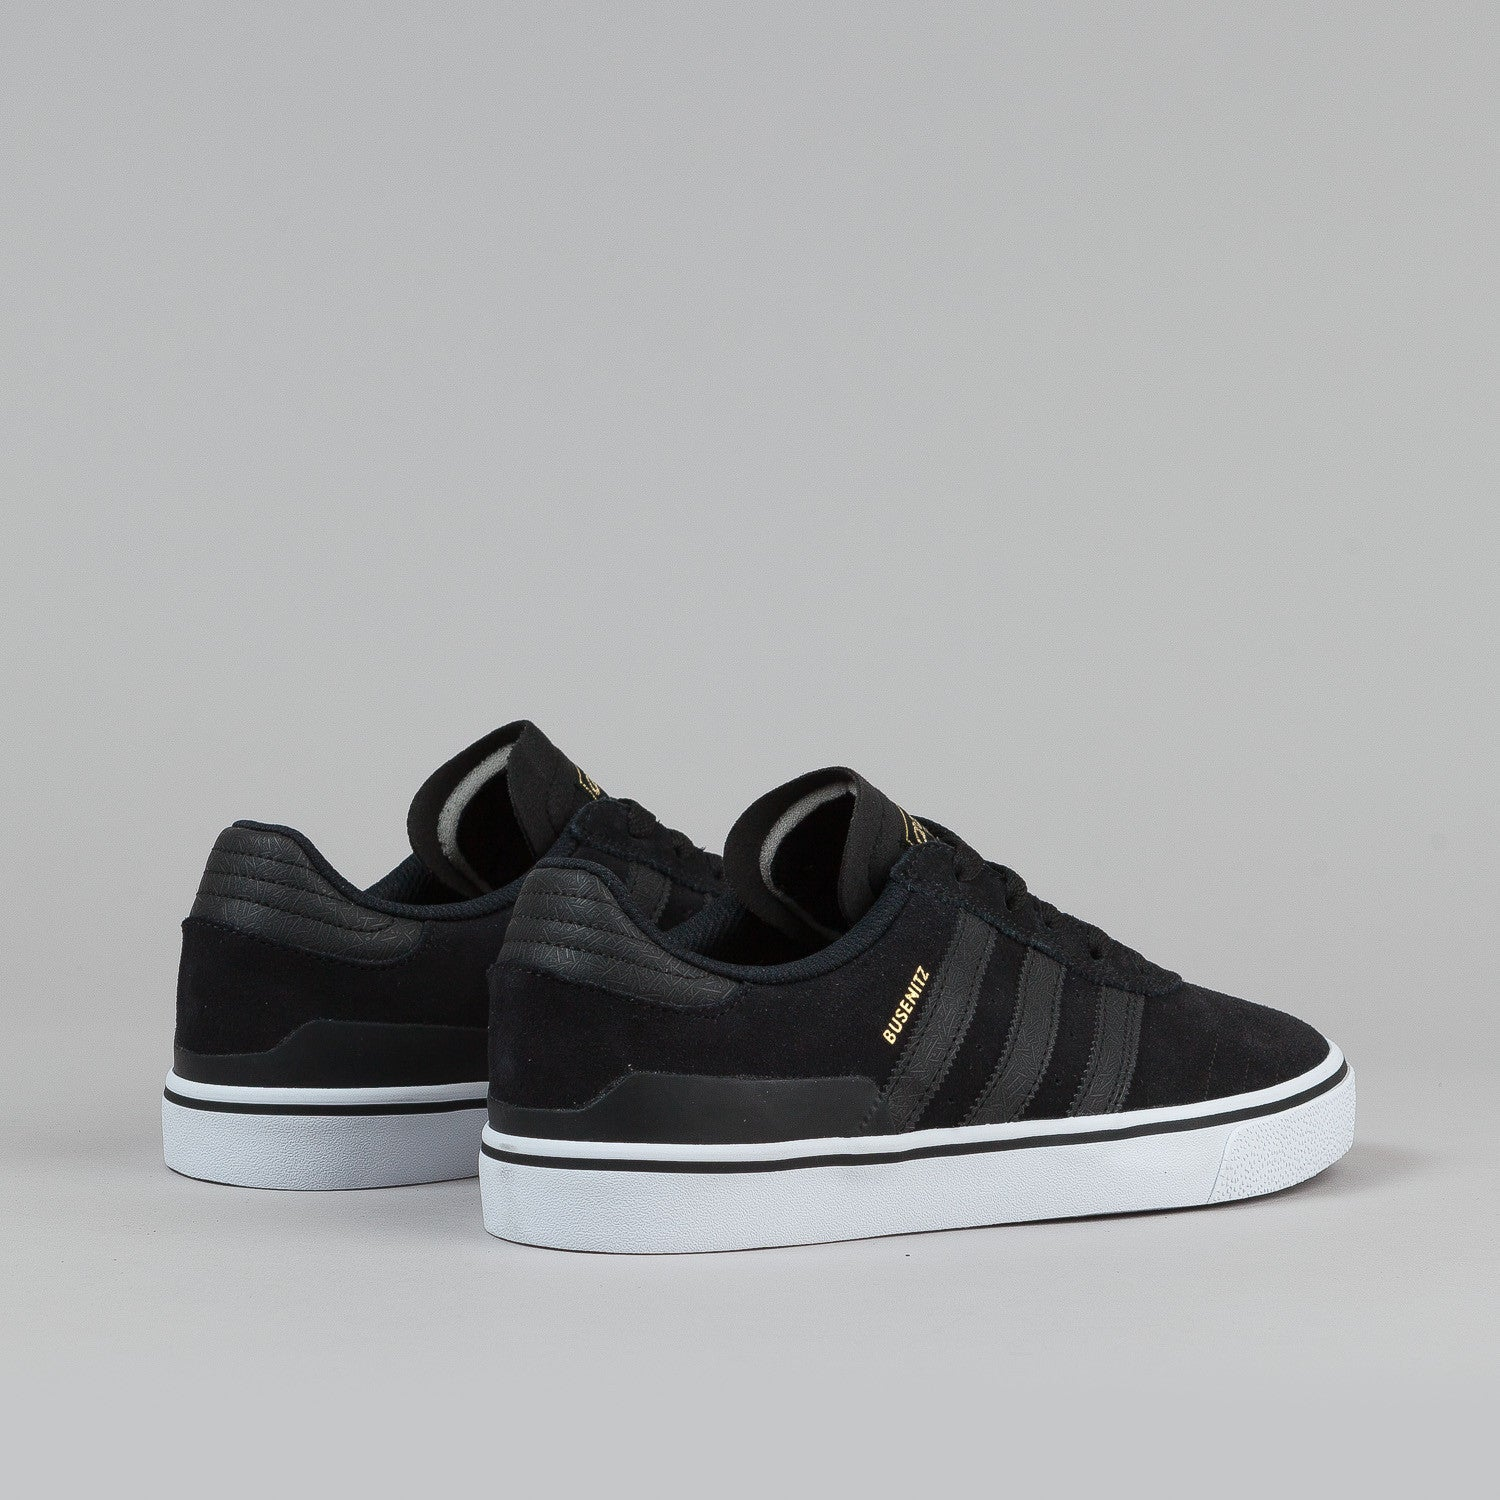 Adidas Busenitz Vulc Shoes - Black / Black / White